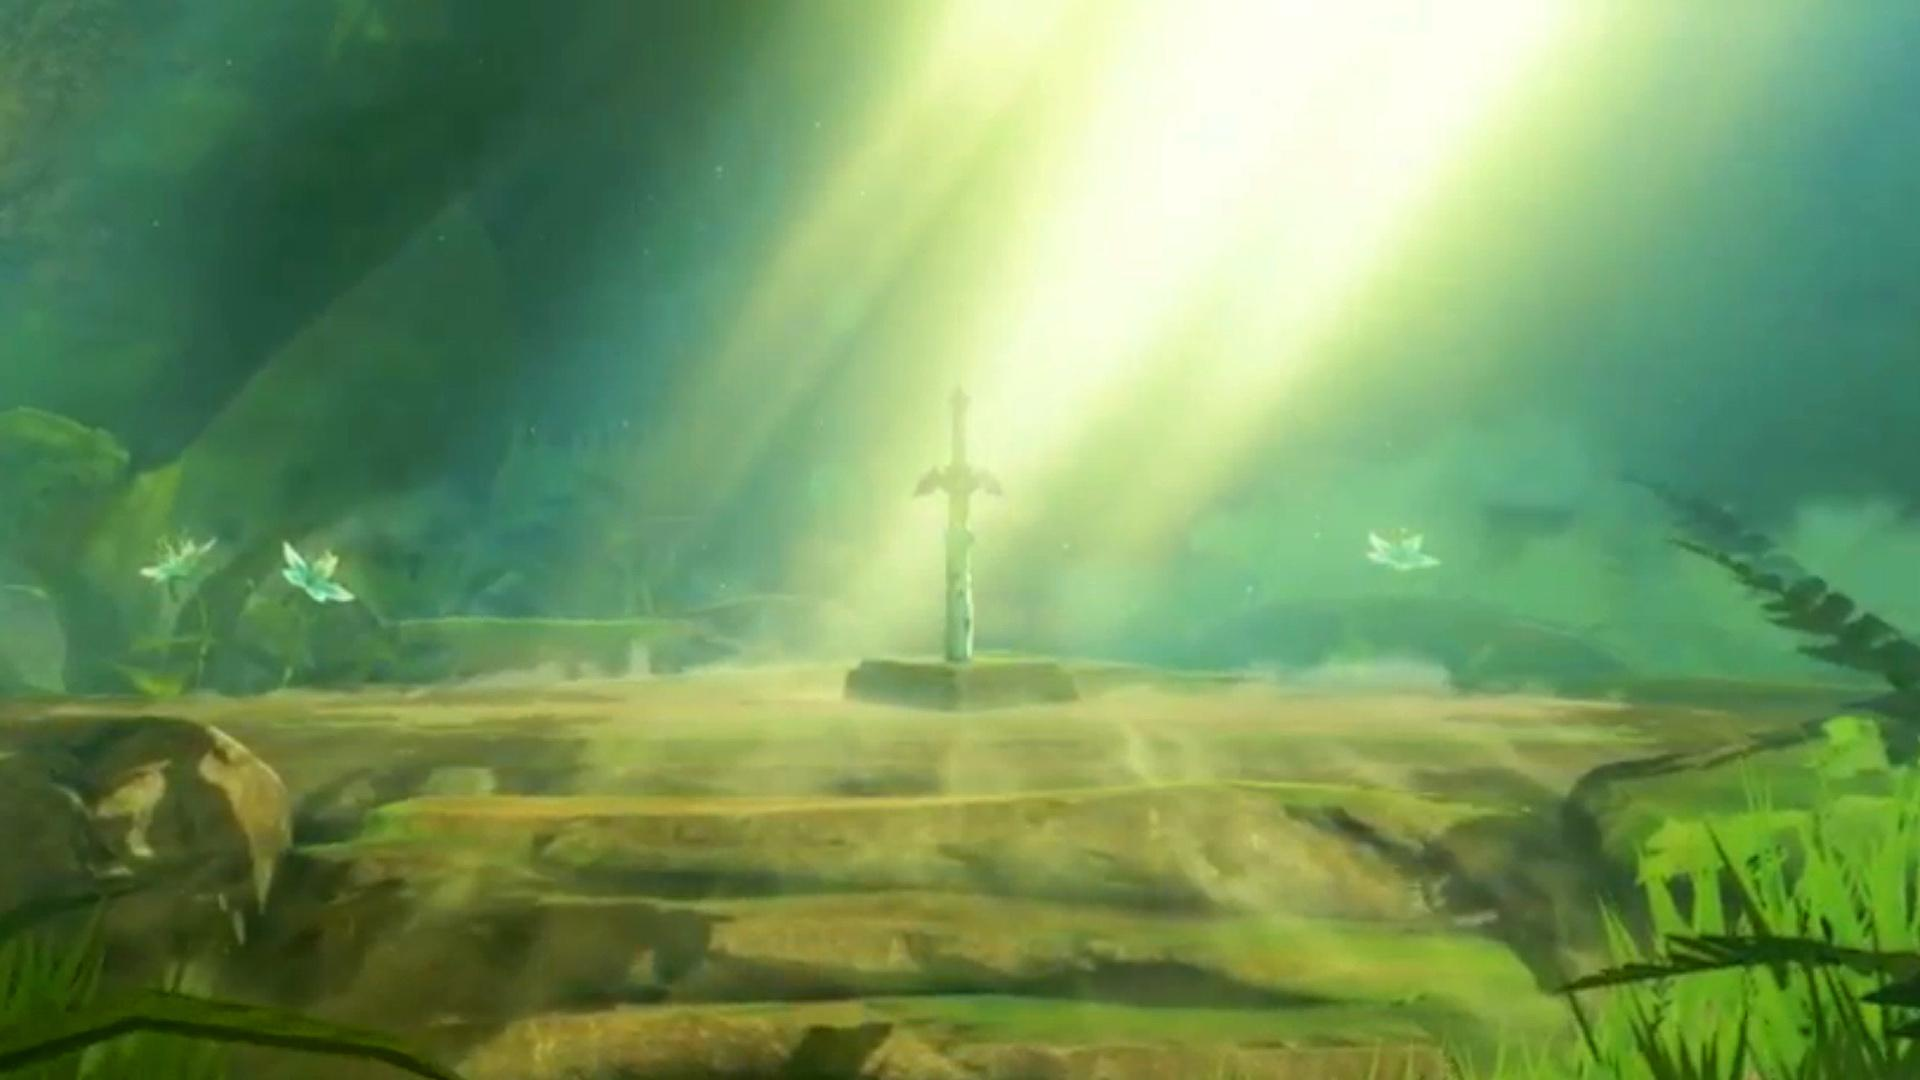 Download Zelda Master Sword Wallpaper Hd Backgrounds Download